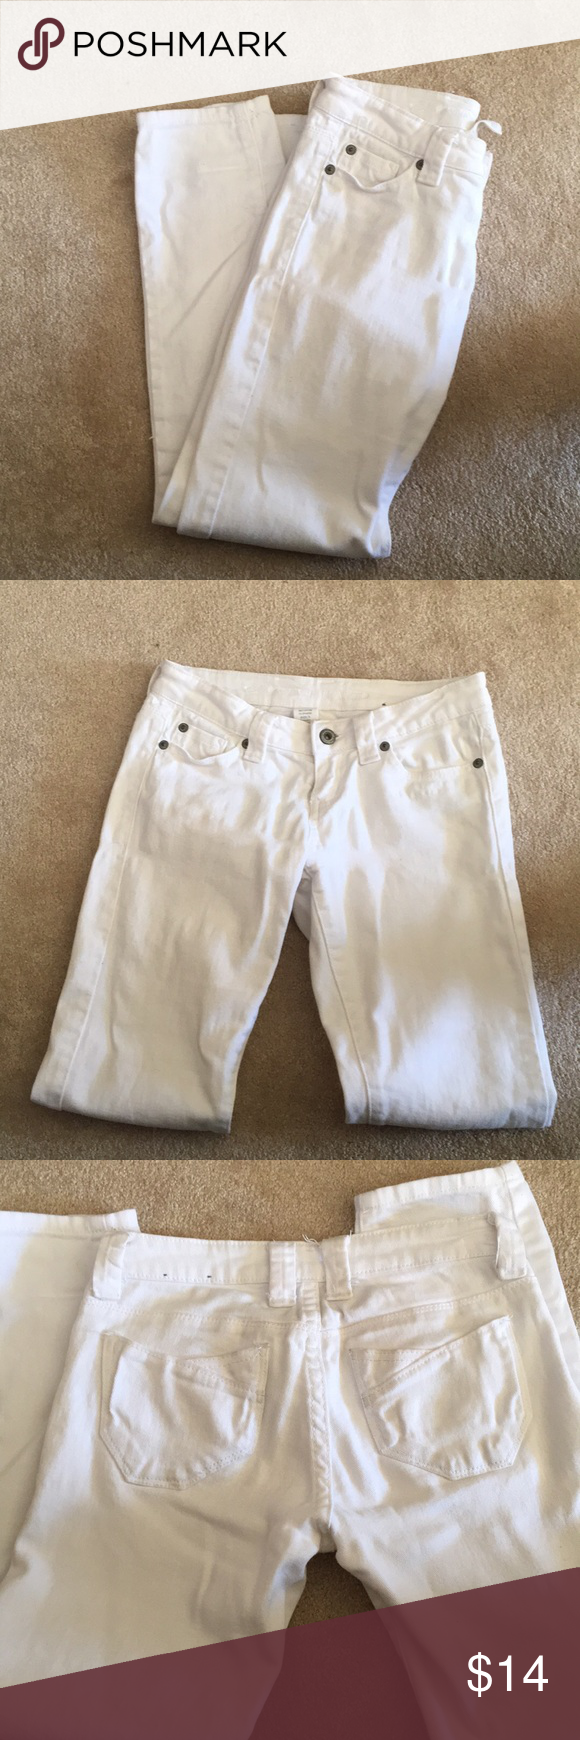 White skinny jeans like new Like new, great pair of white straight leg skinny jeans, size 0 short! Blue Asphalt Pants Skinny